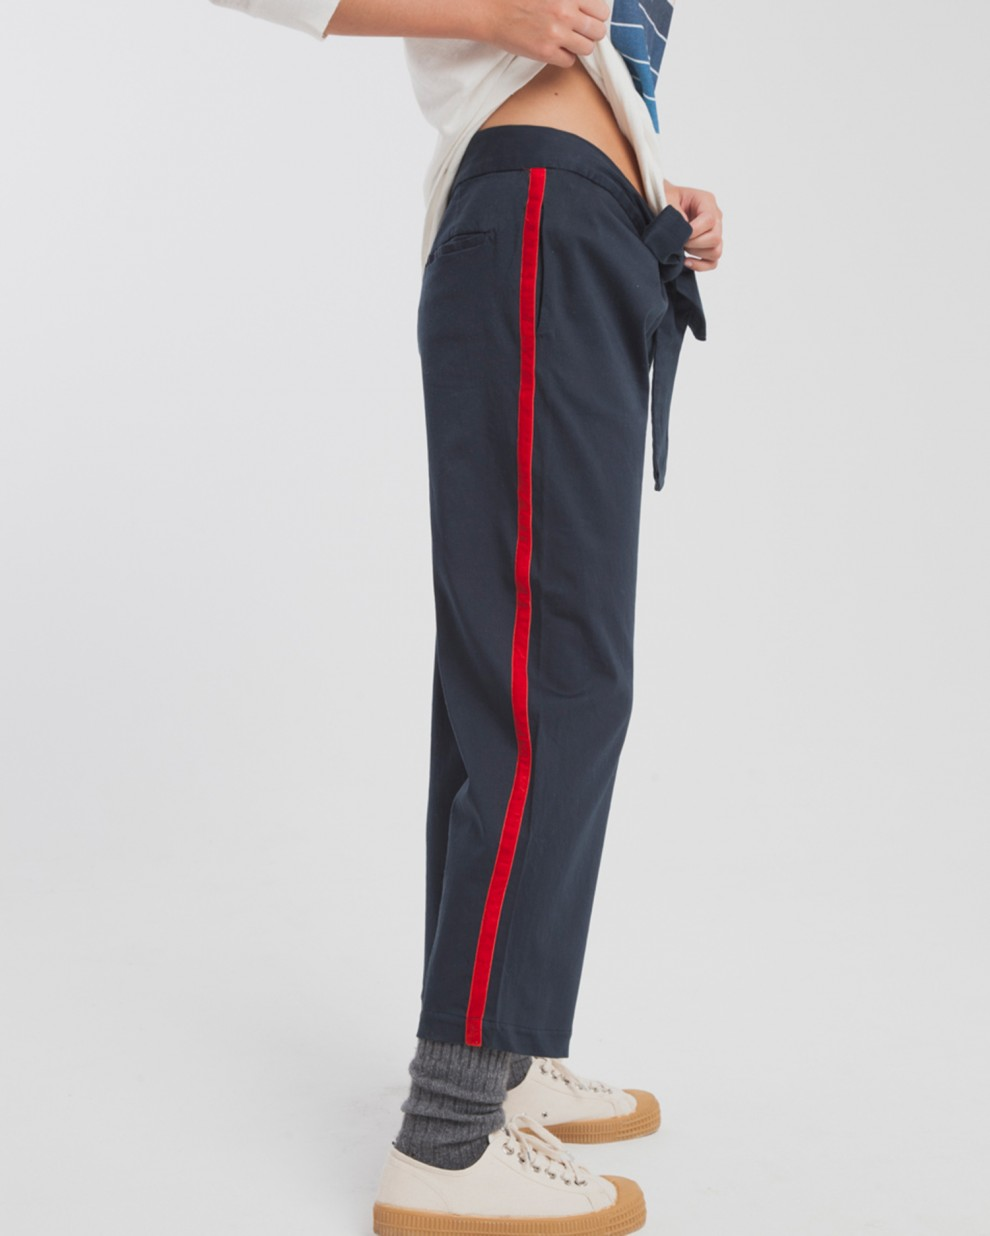 Blue Lateral Lines Thai Pant